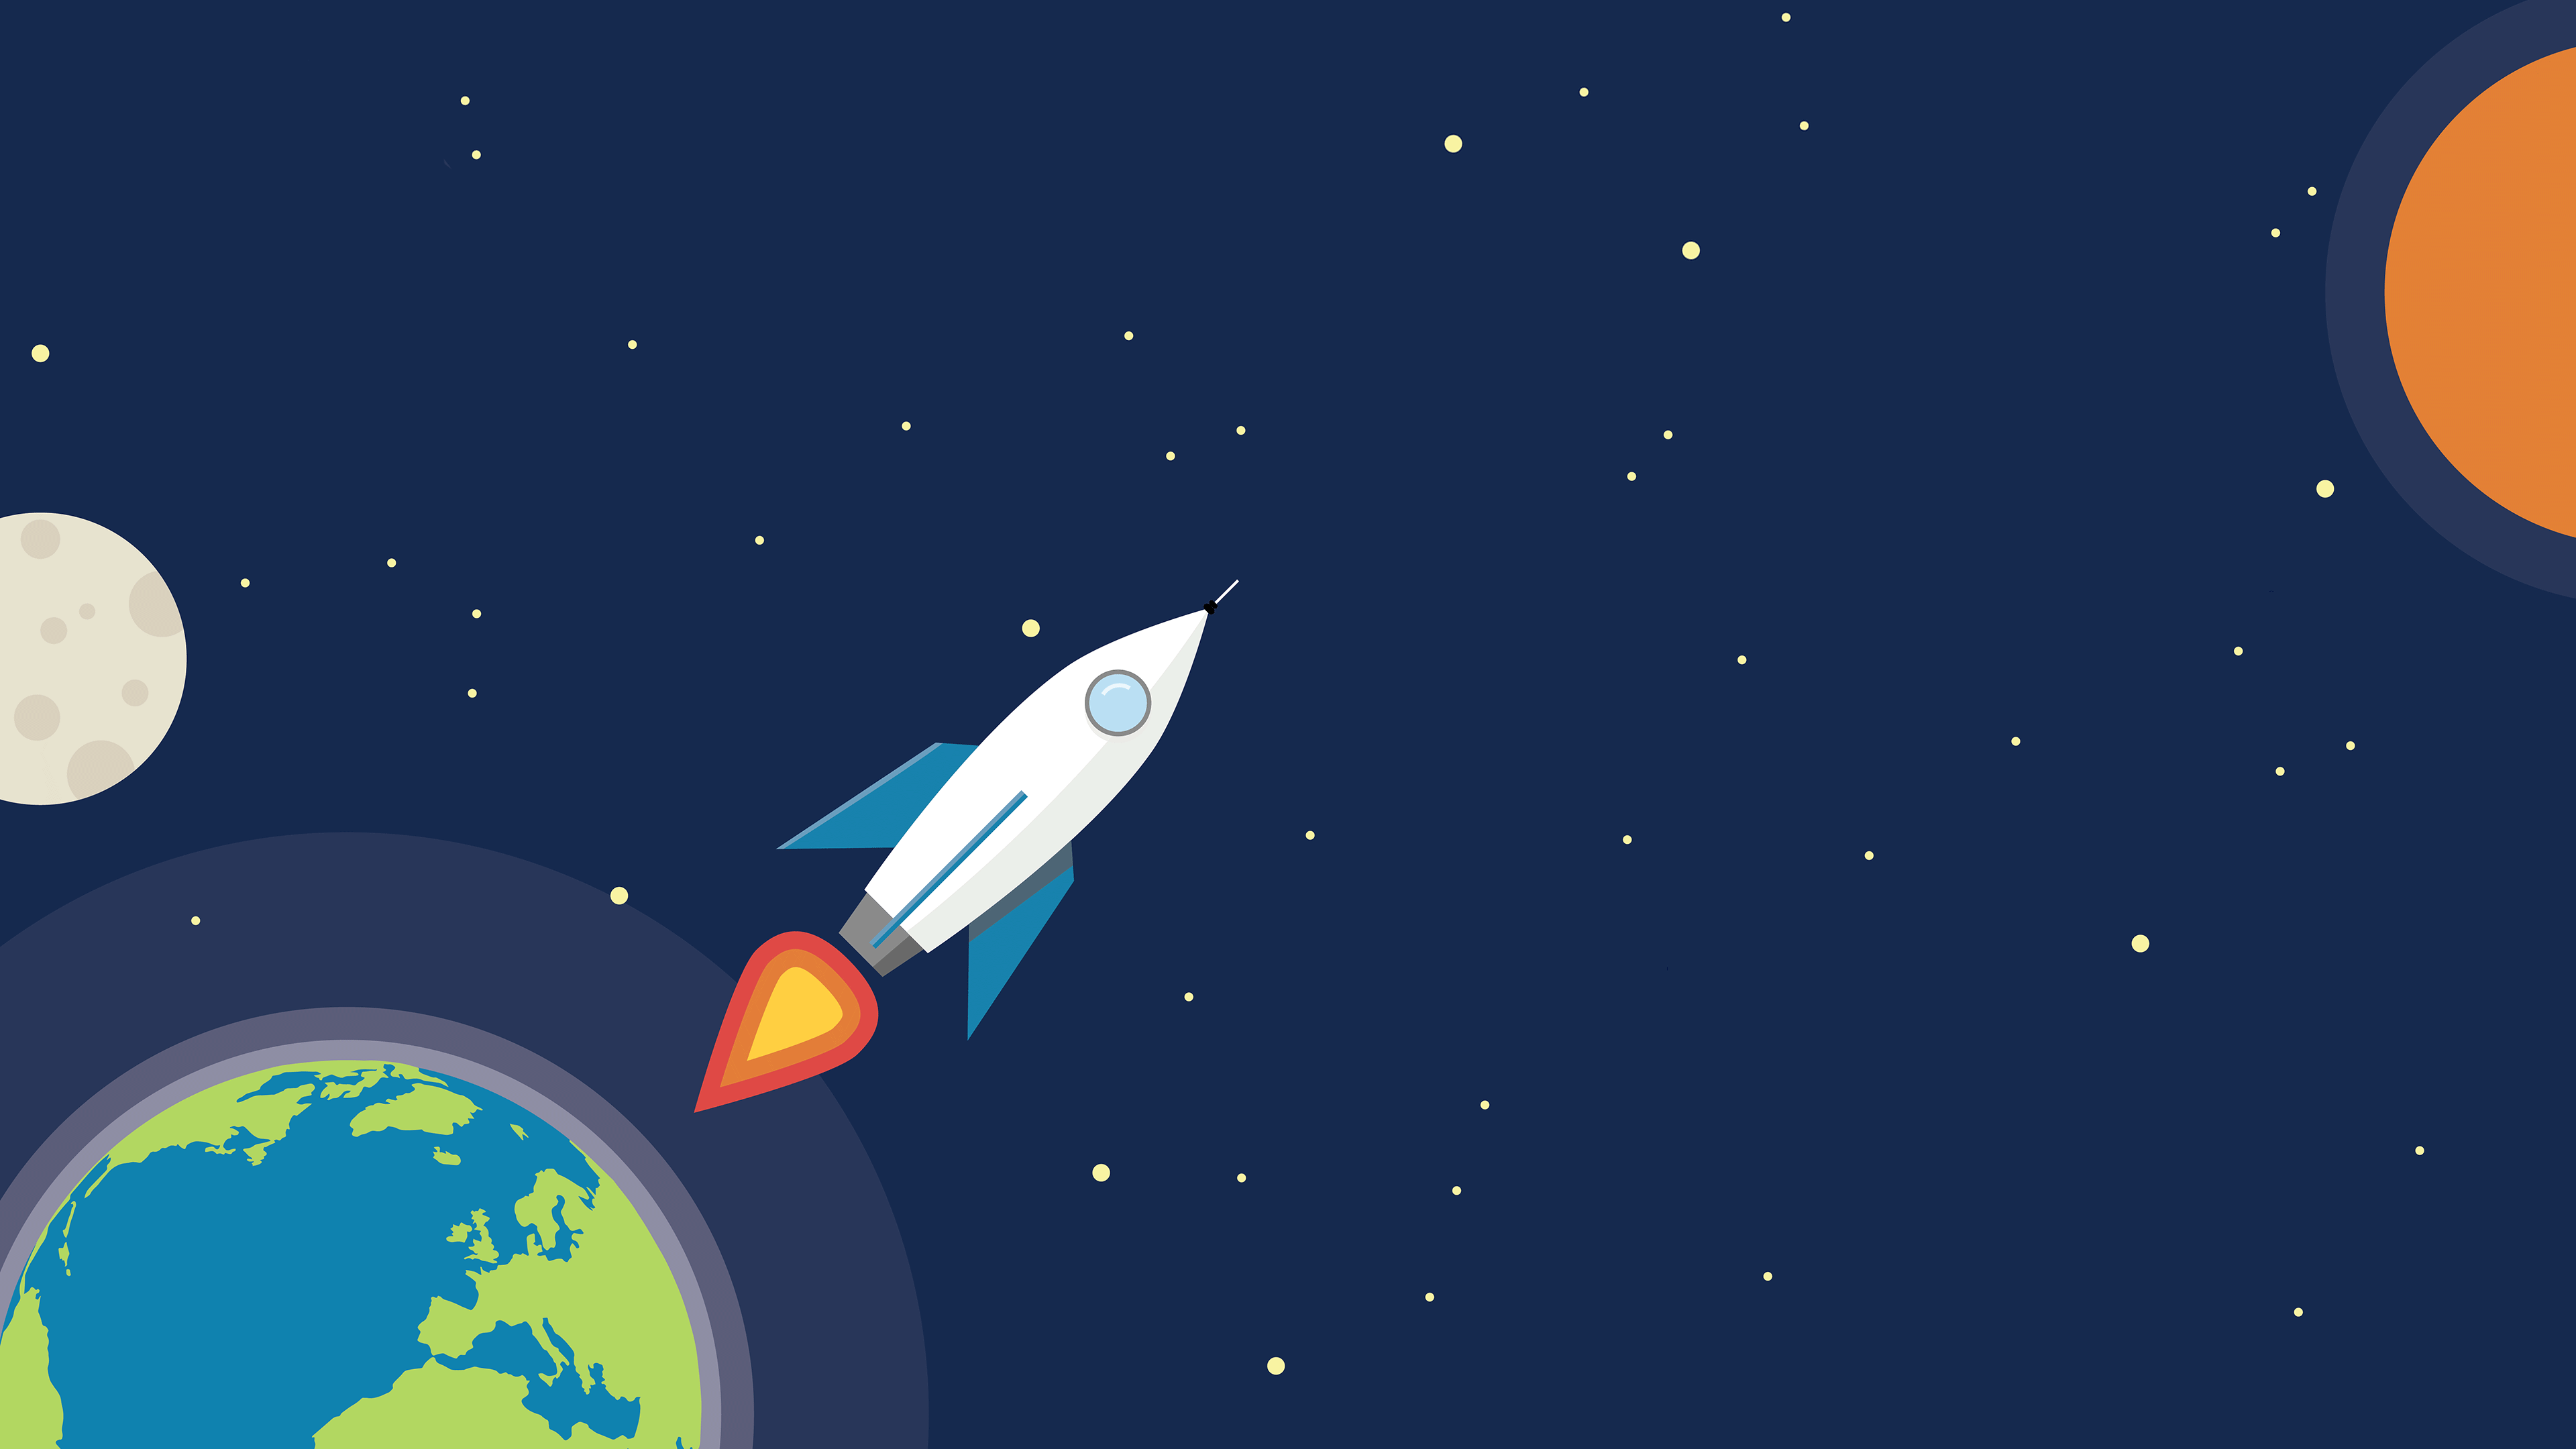 Earth rocket minimalism hd artist 4k wallpapers images for Material design space